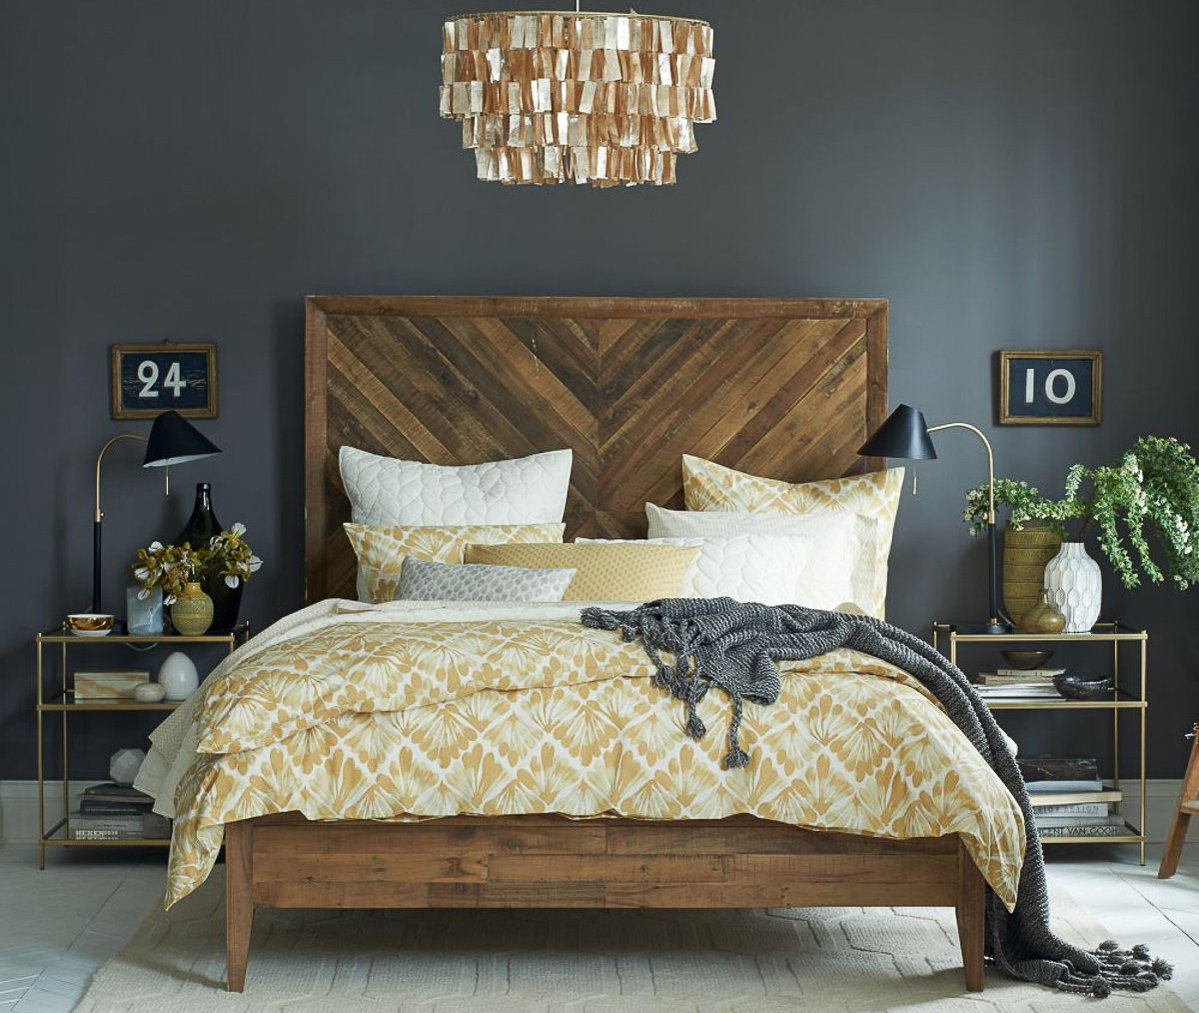 10 of the best online home interior shops - West Elm